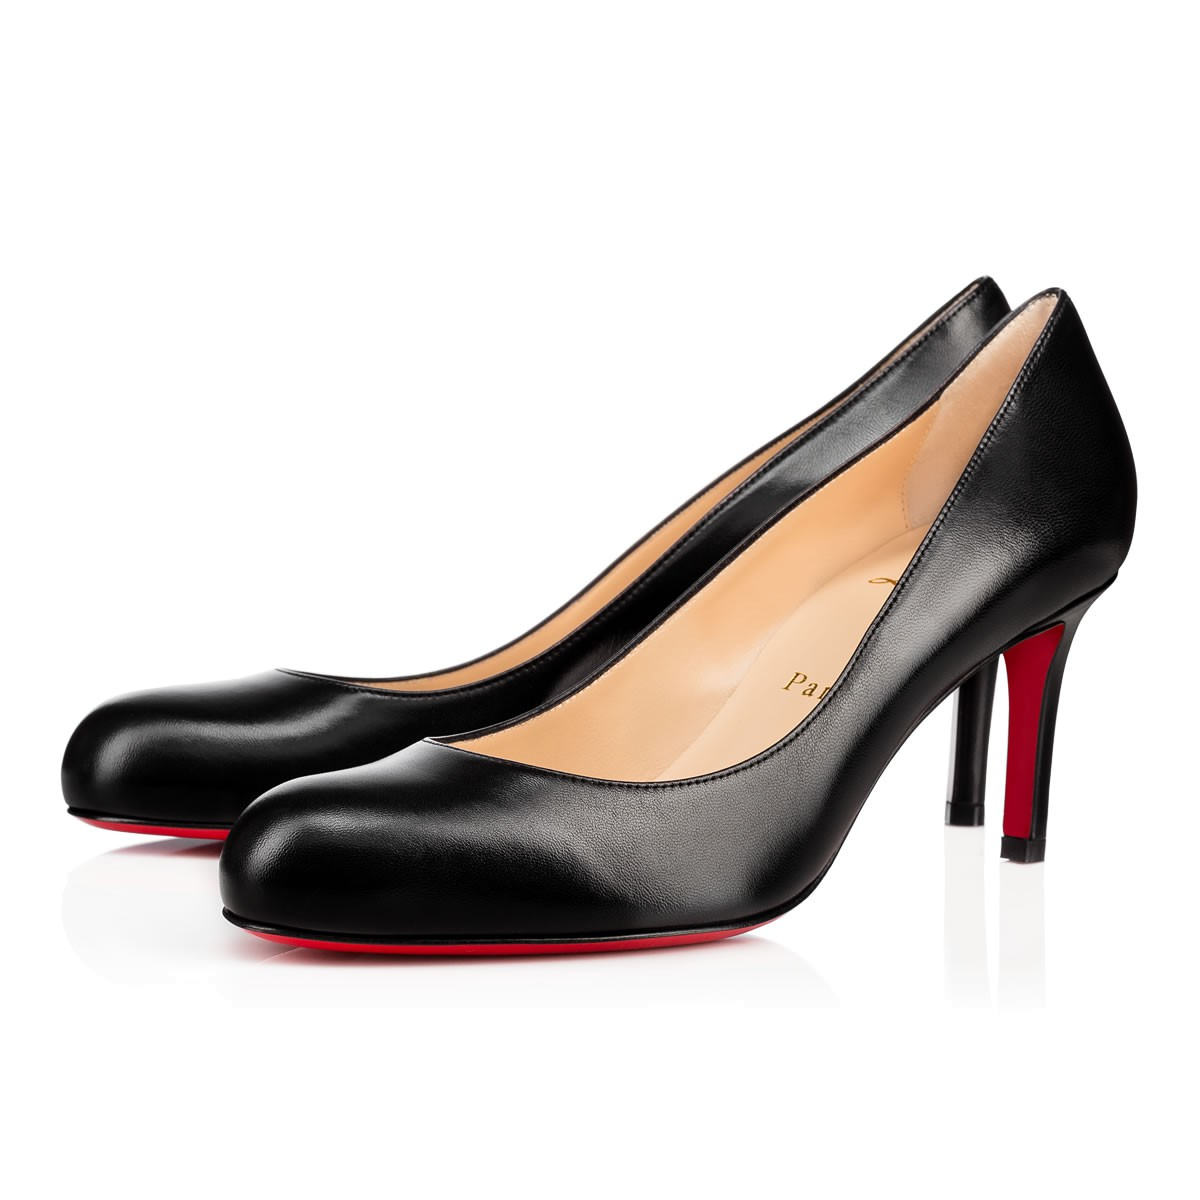 Shoes - Simple Pump - Christian Louboutin ... d5c01e4f9d